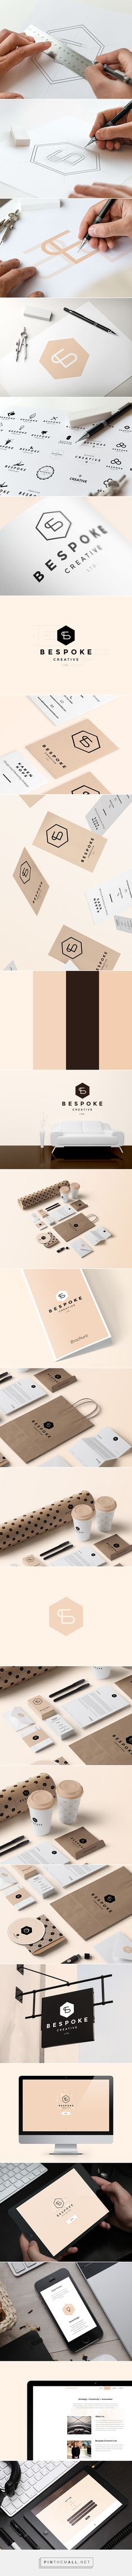 Bespoke Creative Ltd. - Branding & Website